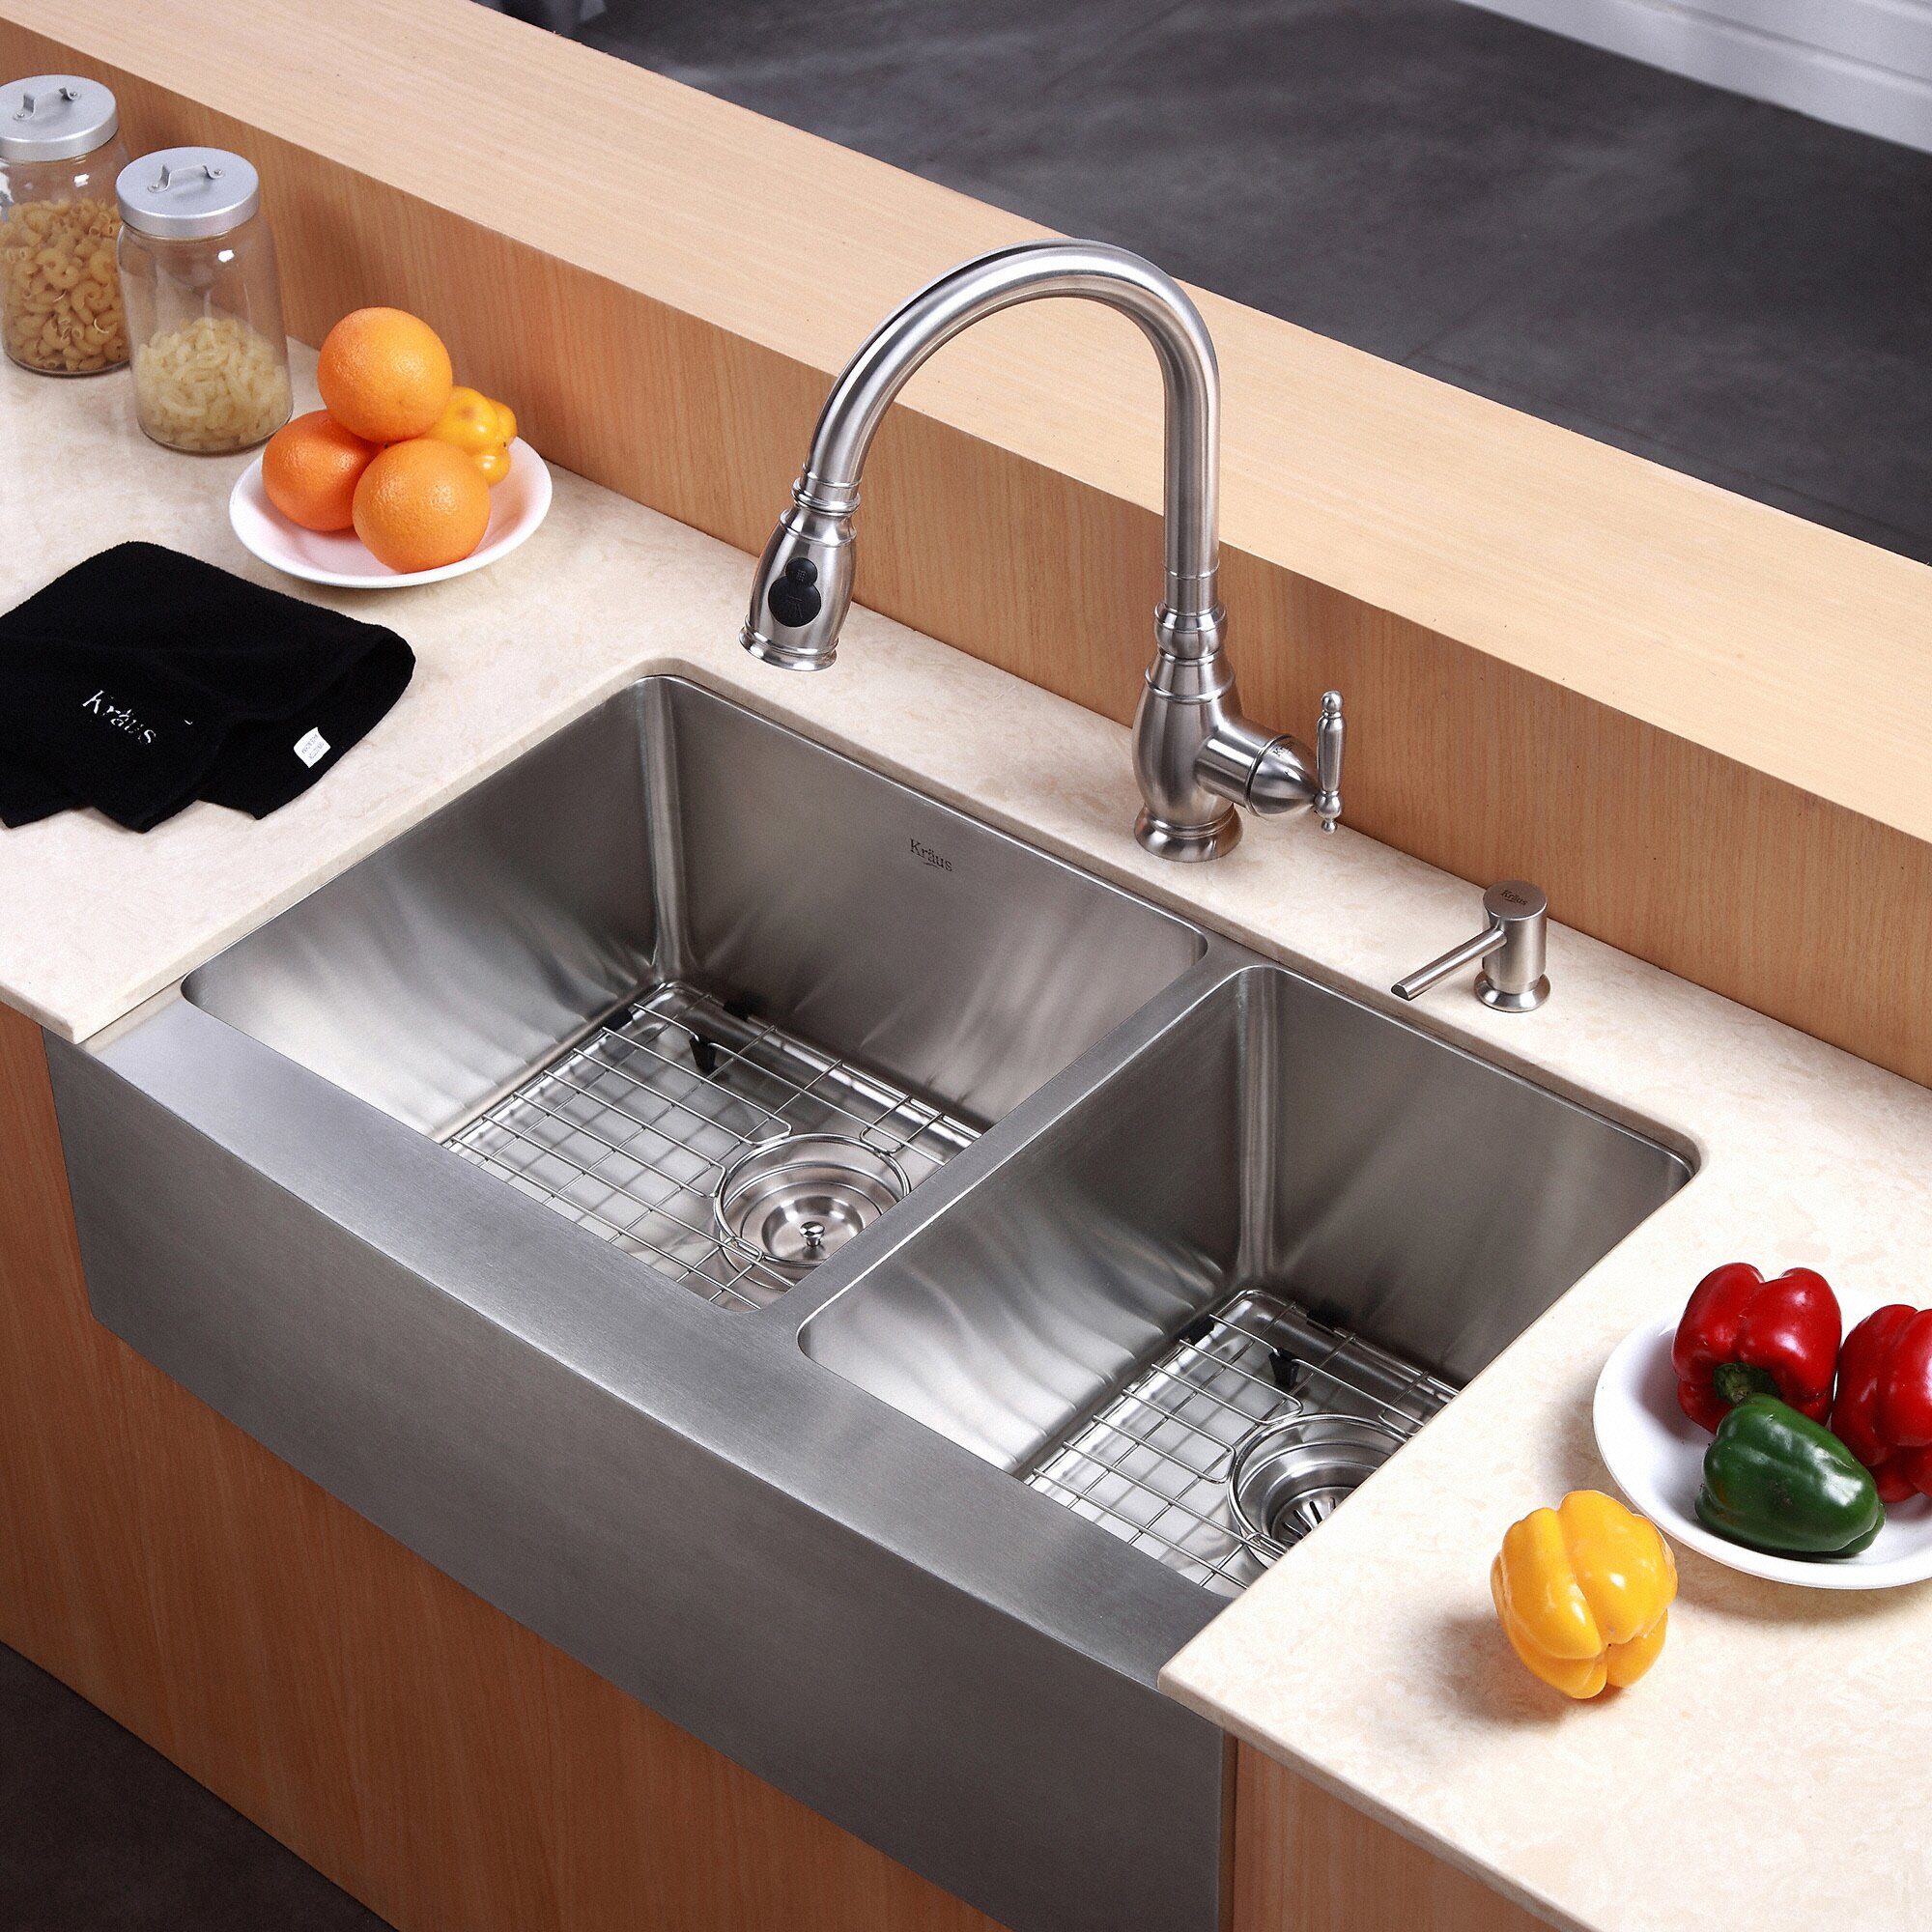 Kraus farmhouse 33quot 60 40 double bowl kitchen sink for 40 inch farmhouse sink